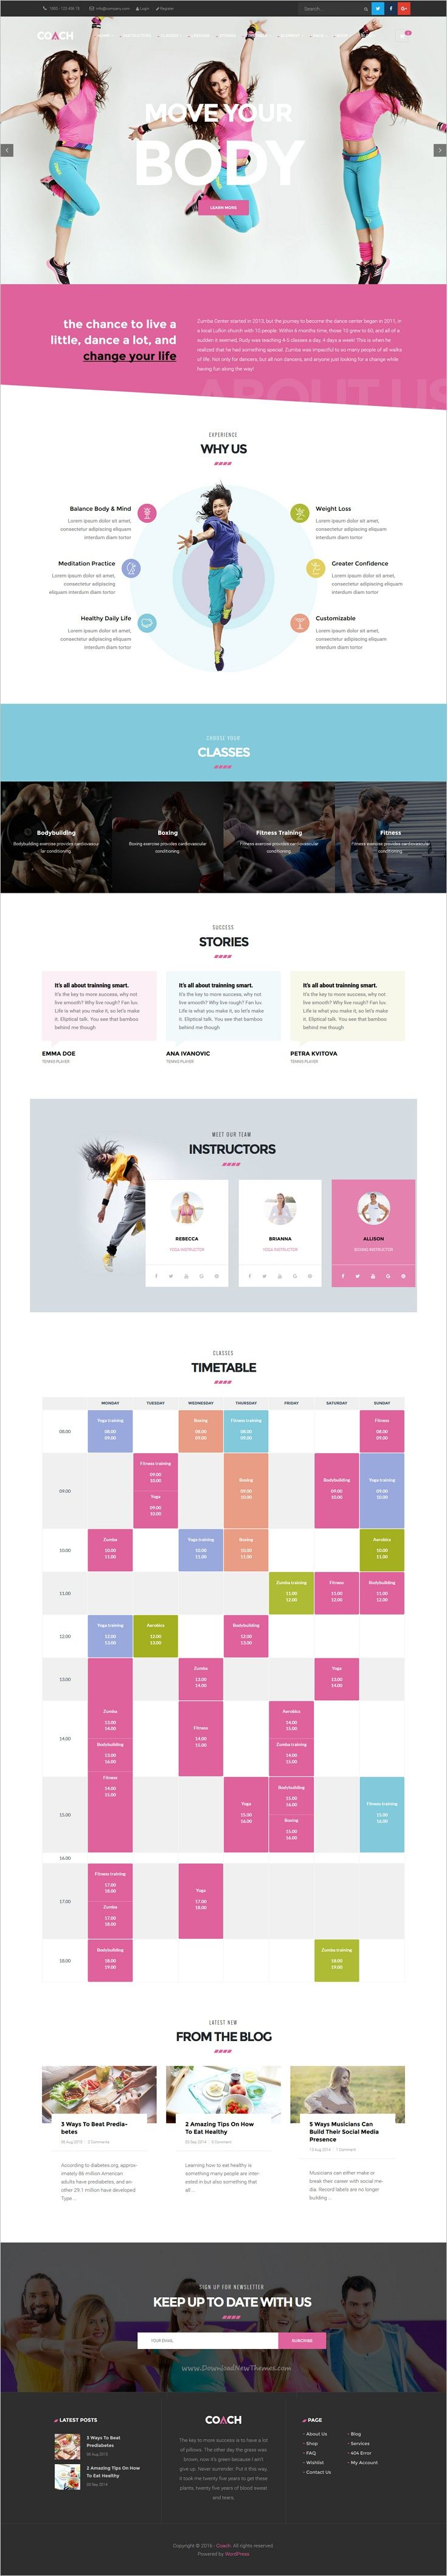 Coach is a creative and modern design responsive 4in1 #WordPress theme for #Sport Clubs, #Fitness Centers & Courses website download now➩  https://themeforest.net/item/coach-sport-clubs-fitness-centers-courses-wordpress-theme/18778699?ref=Datasata